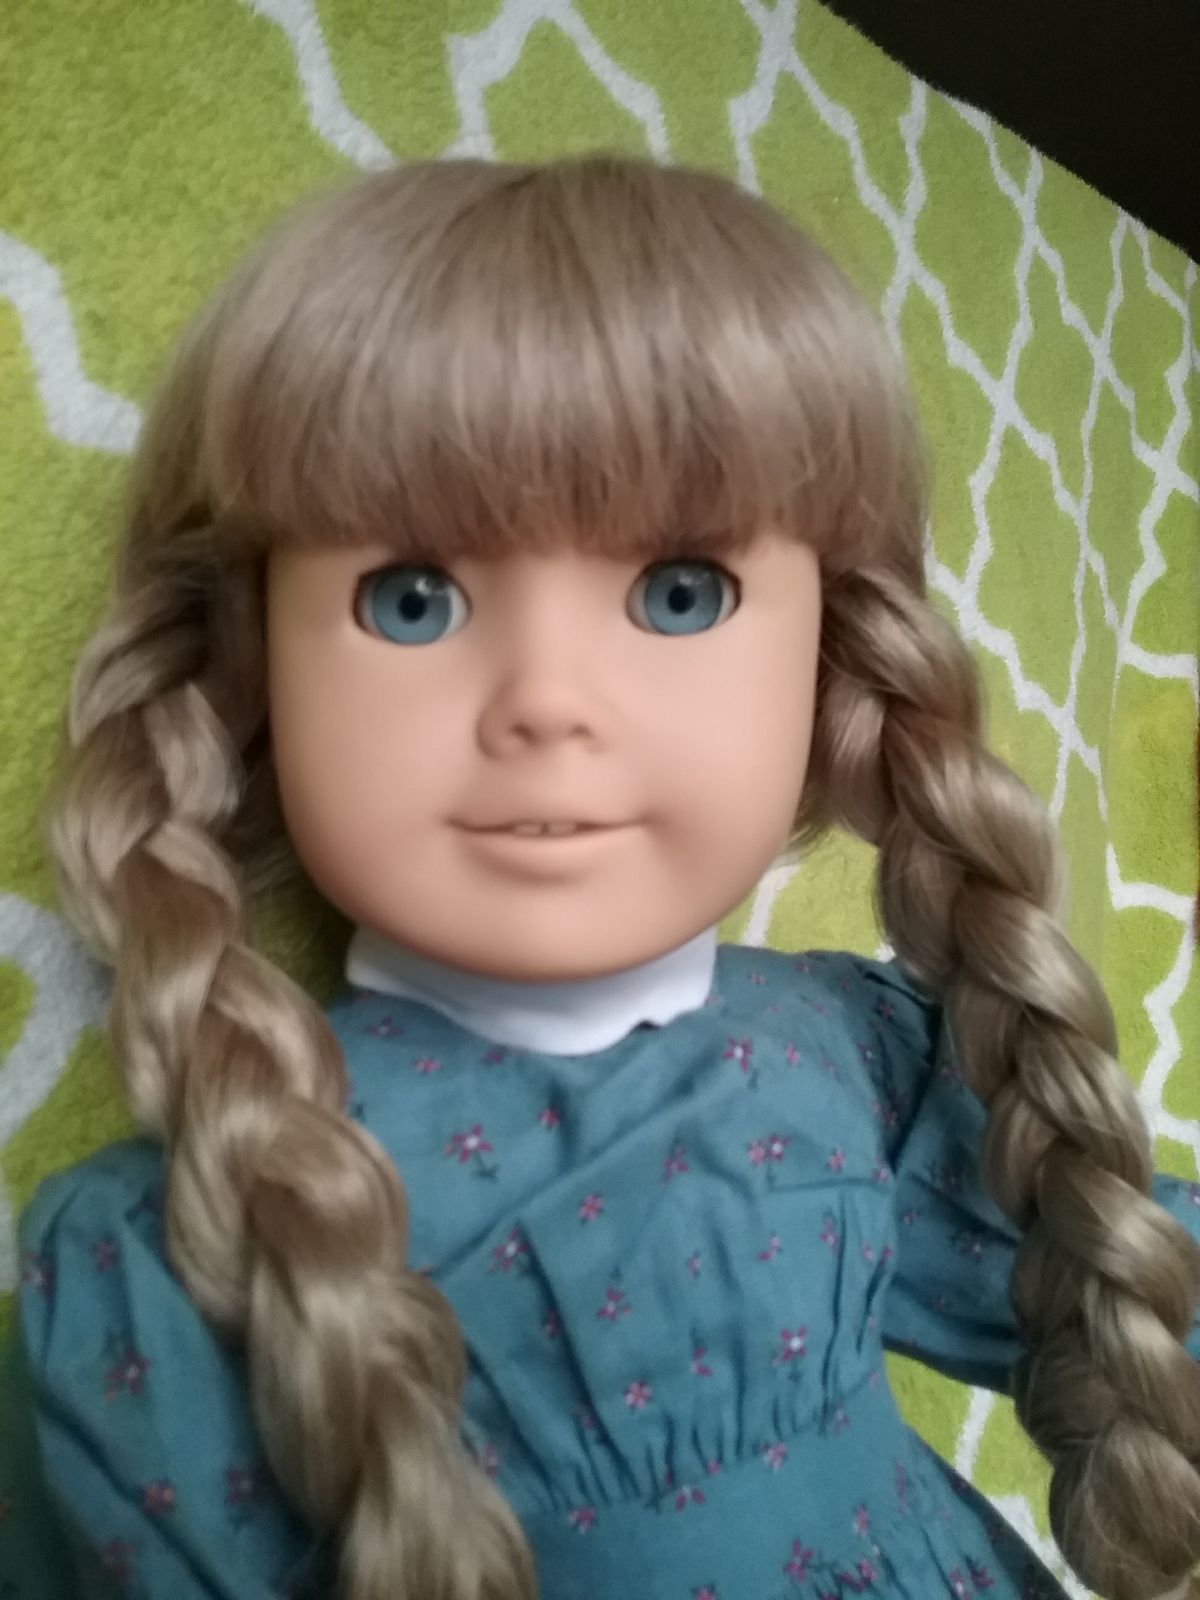 How do i identify an american girl doll? - Asked by emmesattic